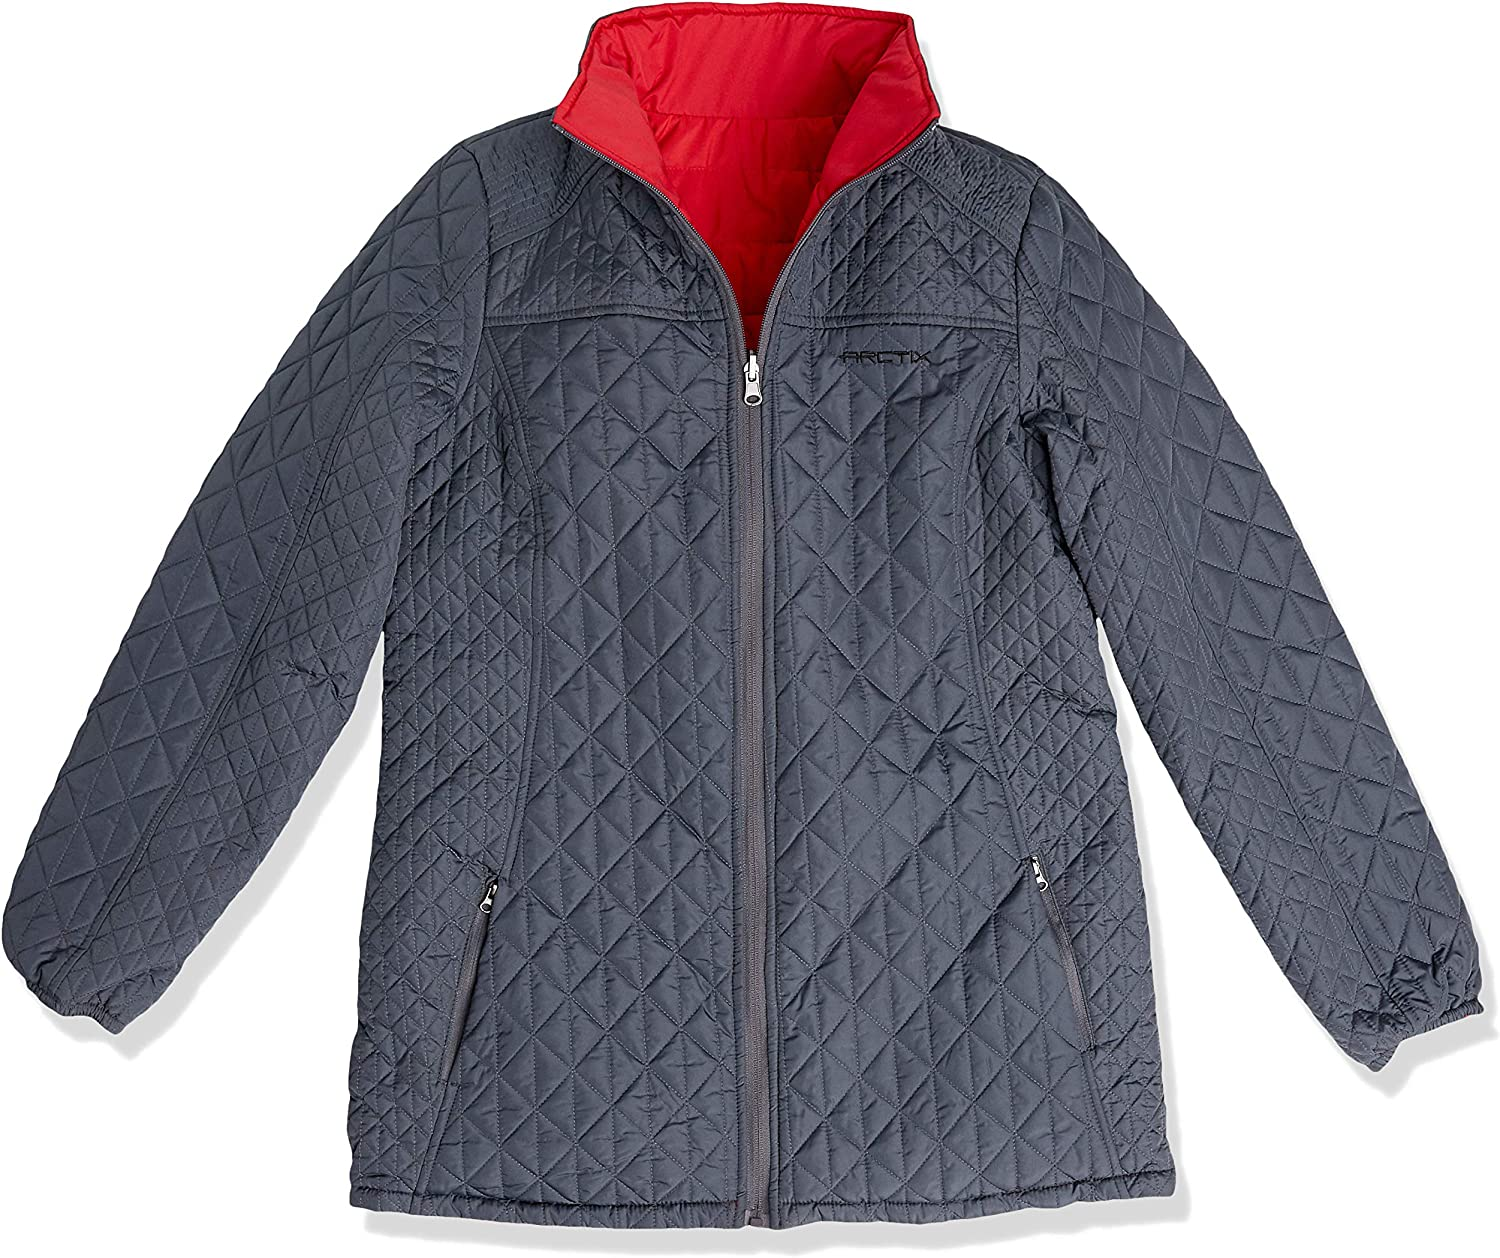 Arctix Women's Kaylee Ultralite Reversible Quilted 3/4 Length Jacket